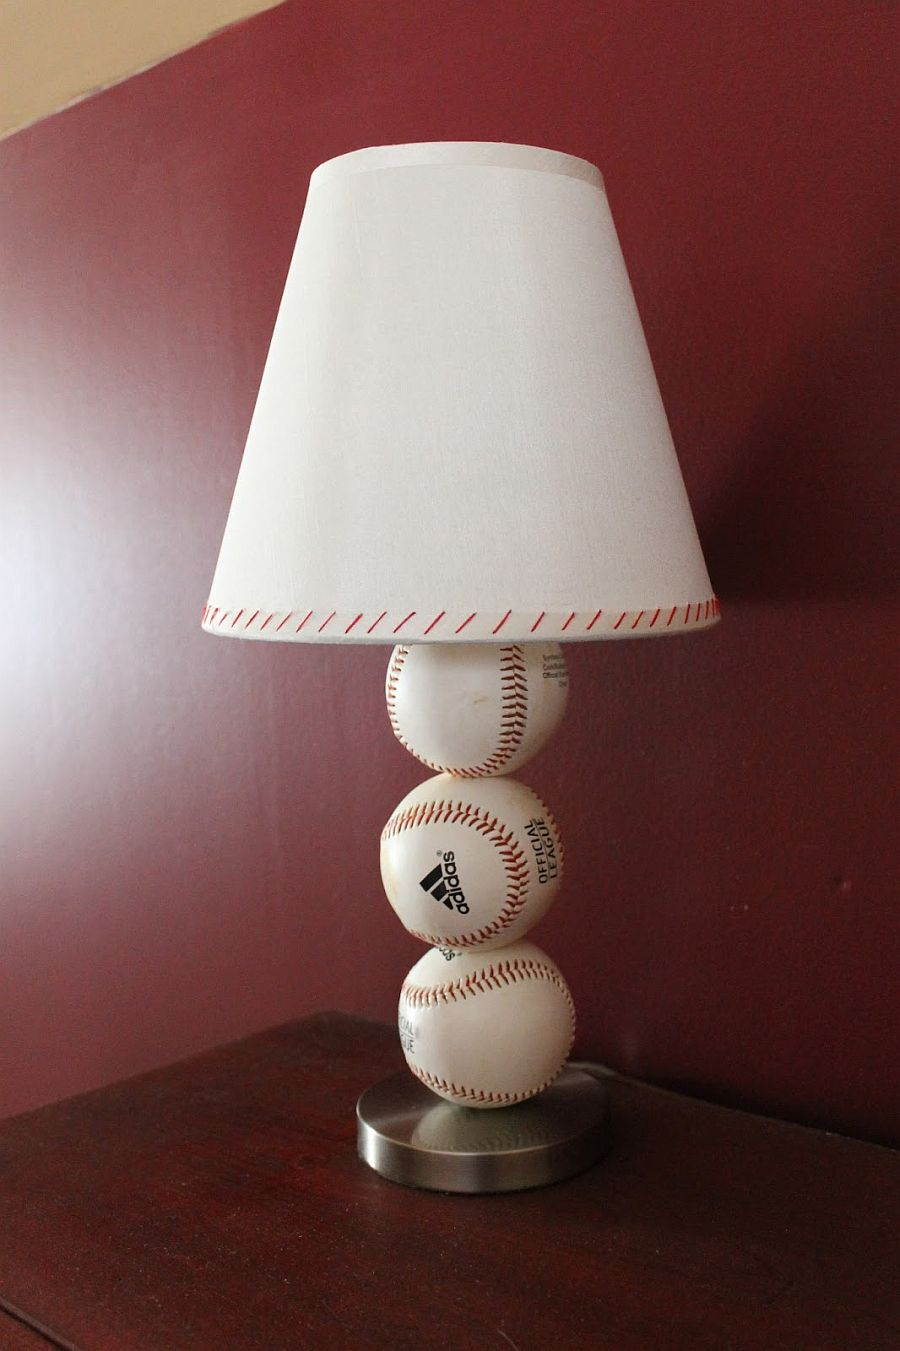 Combining Two Favorite Pastimes Cute Baseball Themed Crafts